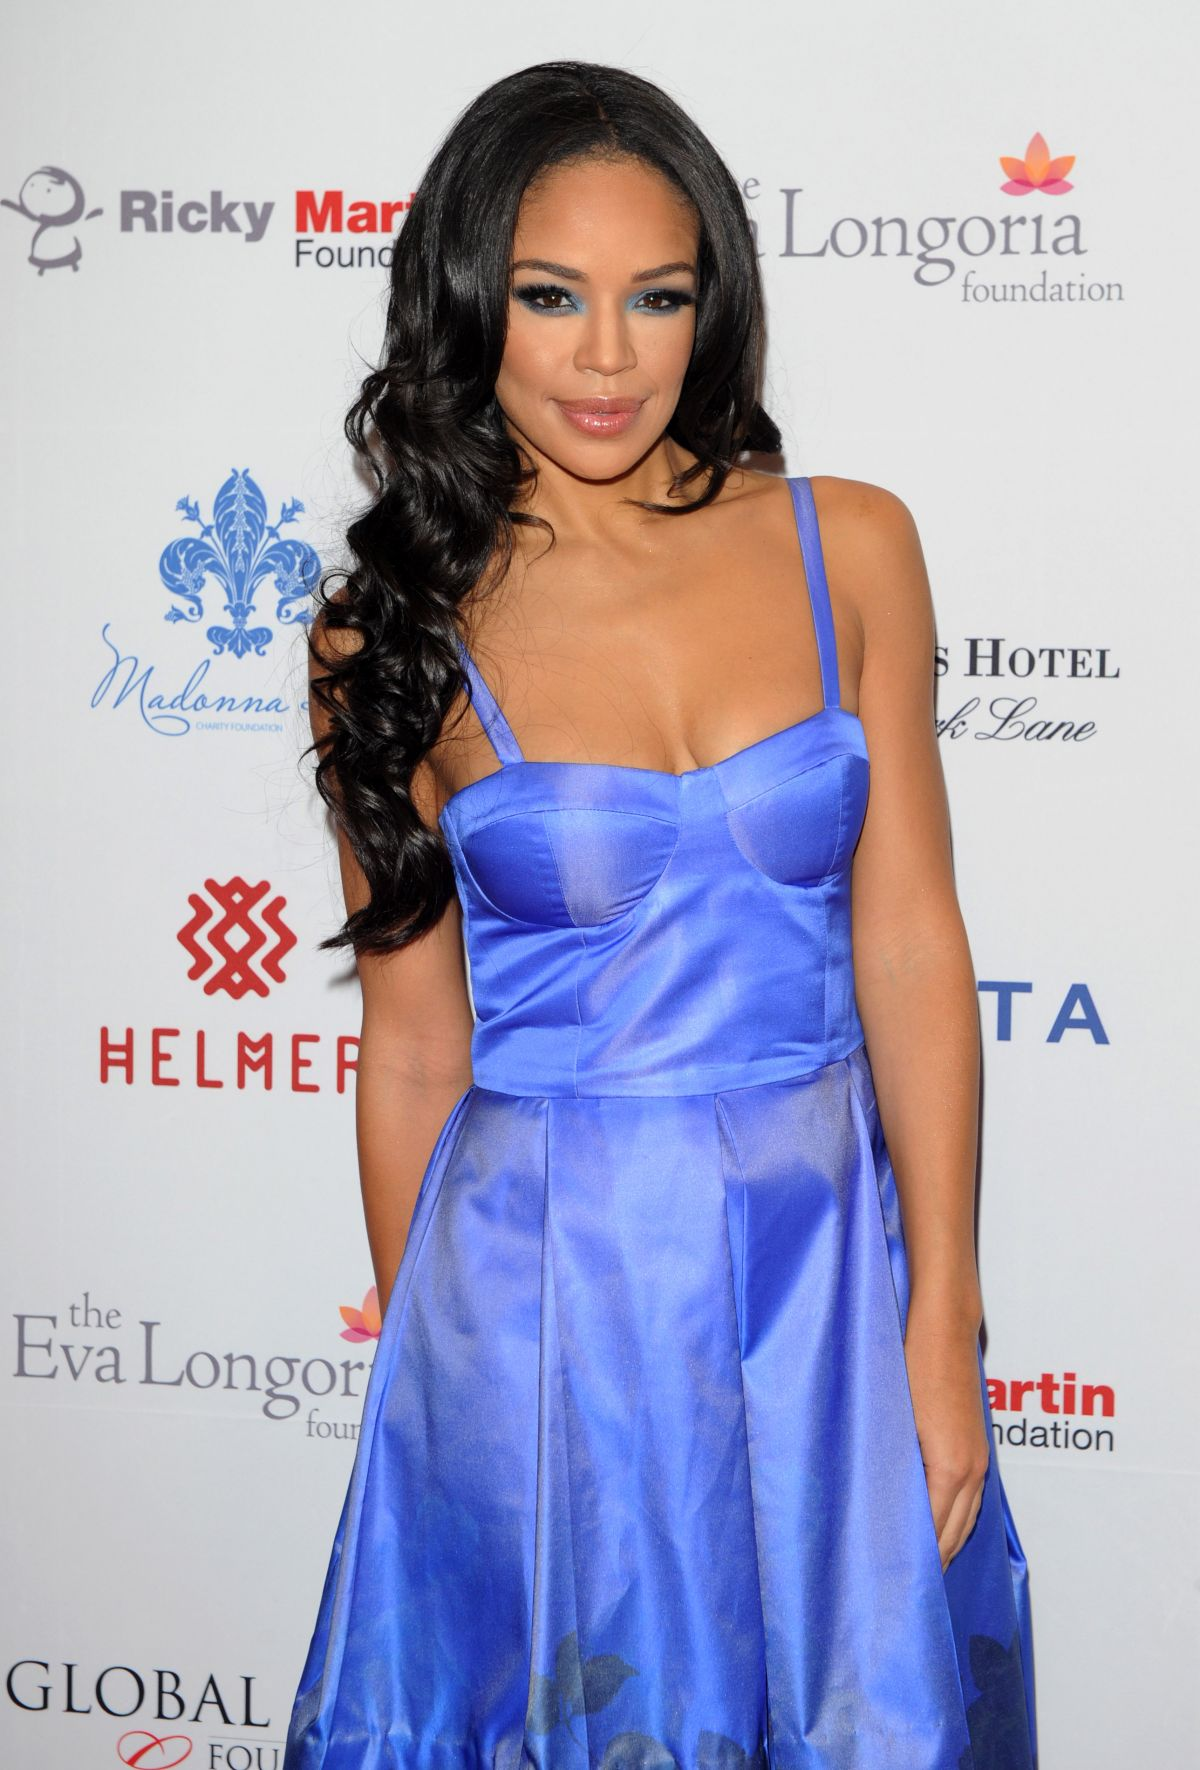 SARAH-JANE CRAWFORD at Global Gift Gala in London